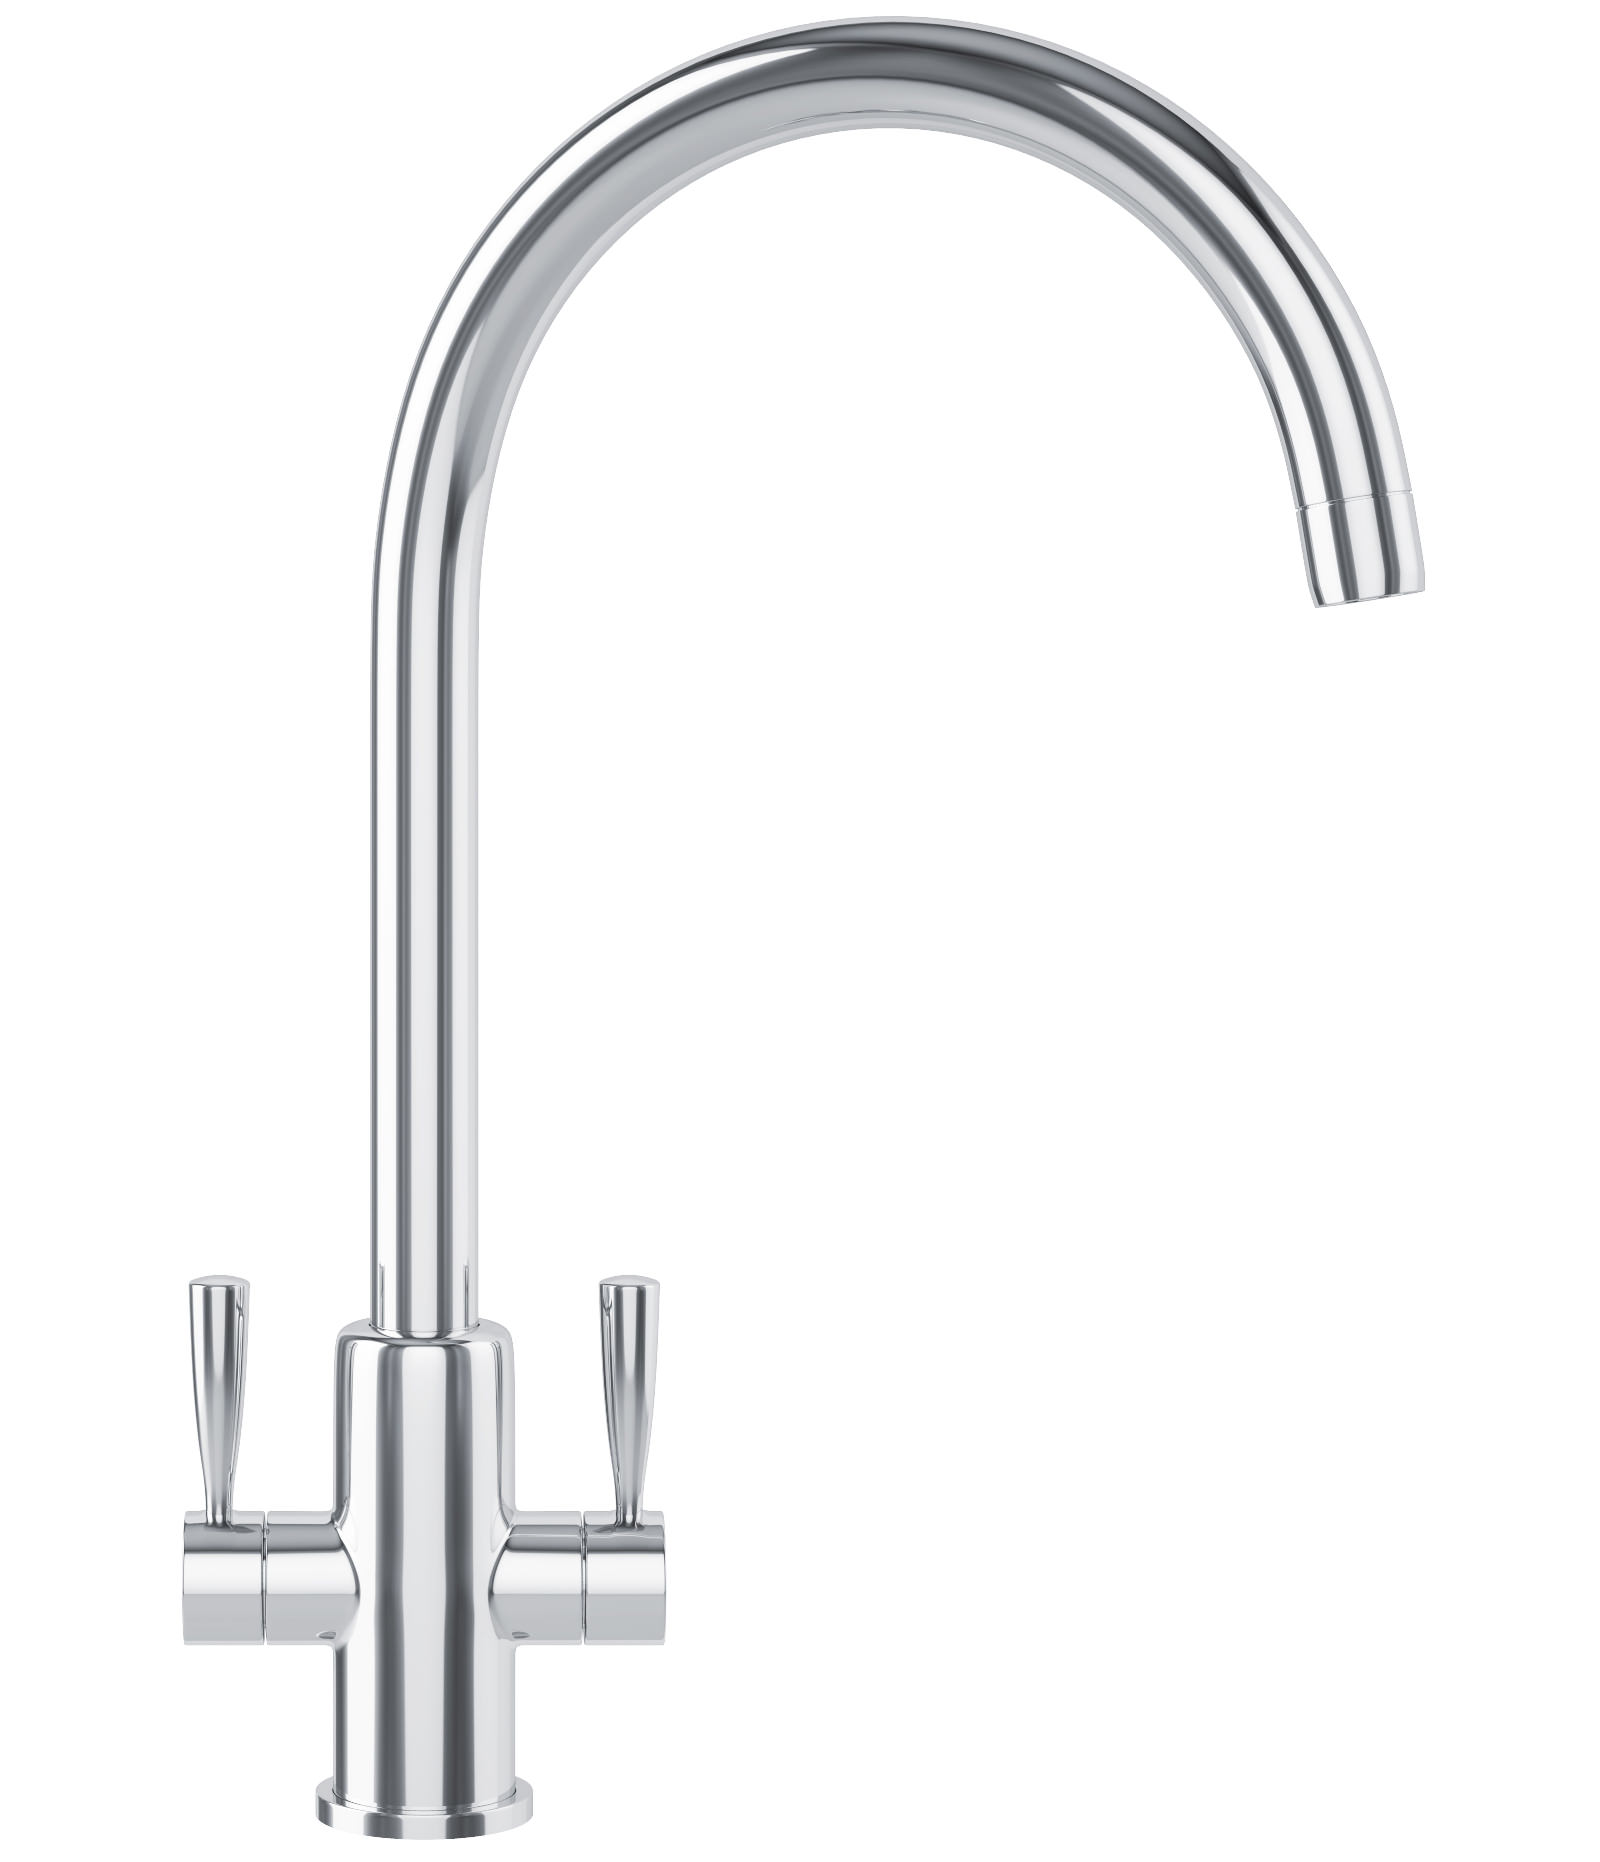 Franke Sinks And Taps : ... taps kitchen mixer taps franke ascona kitchen sink mixer tap chrome